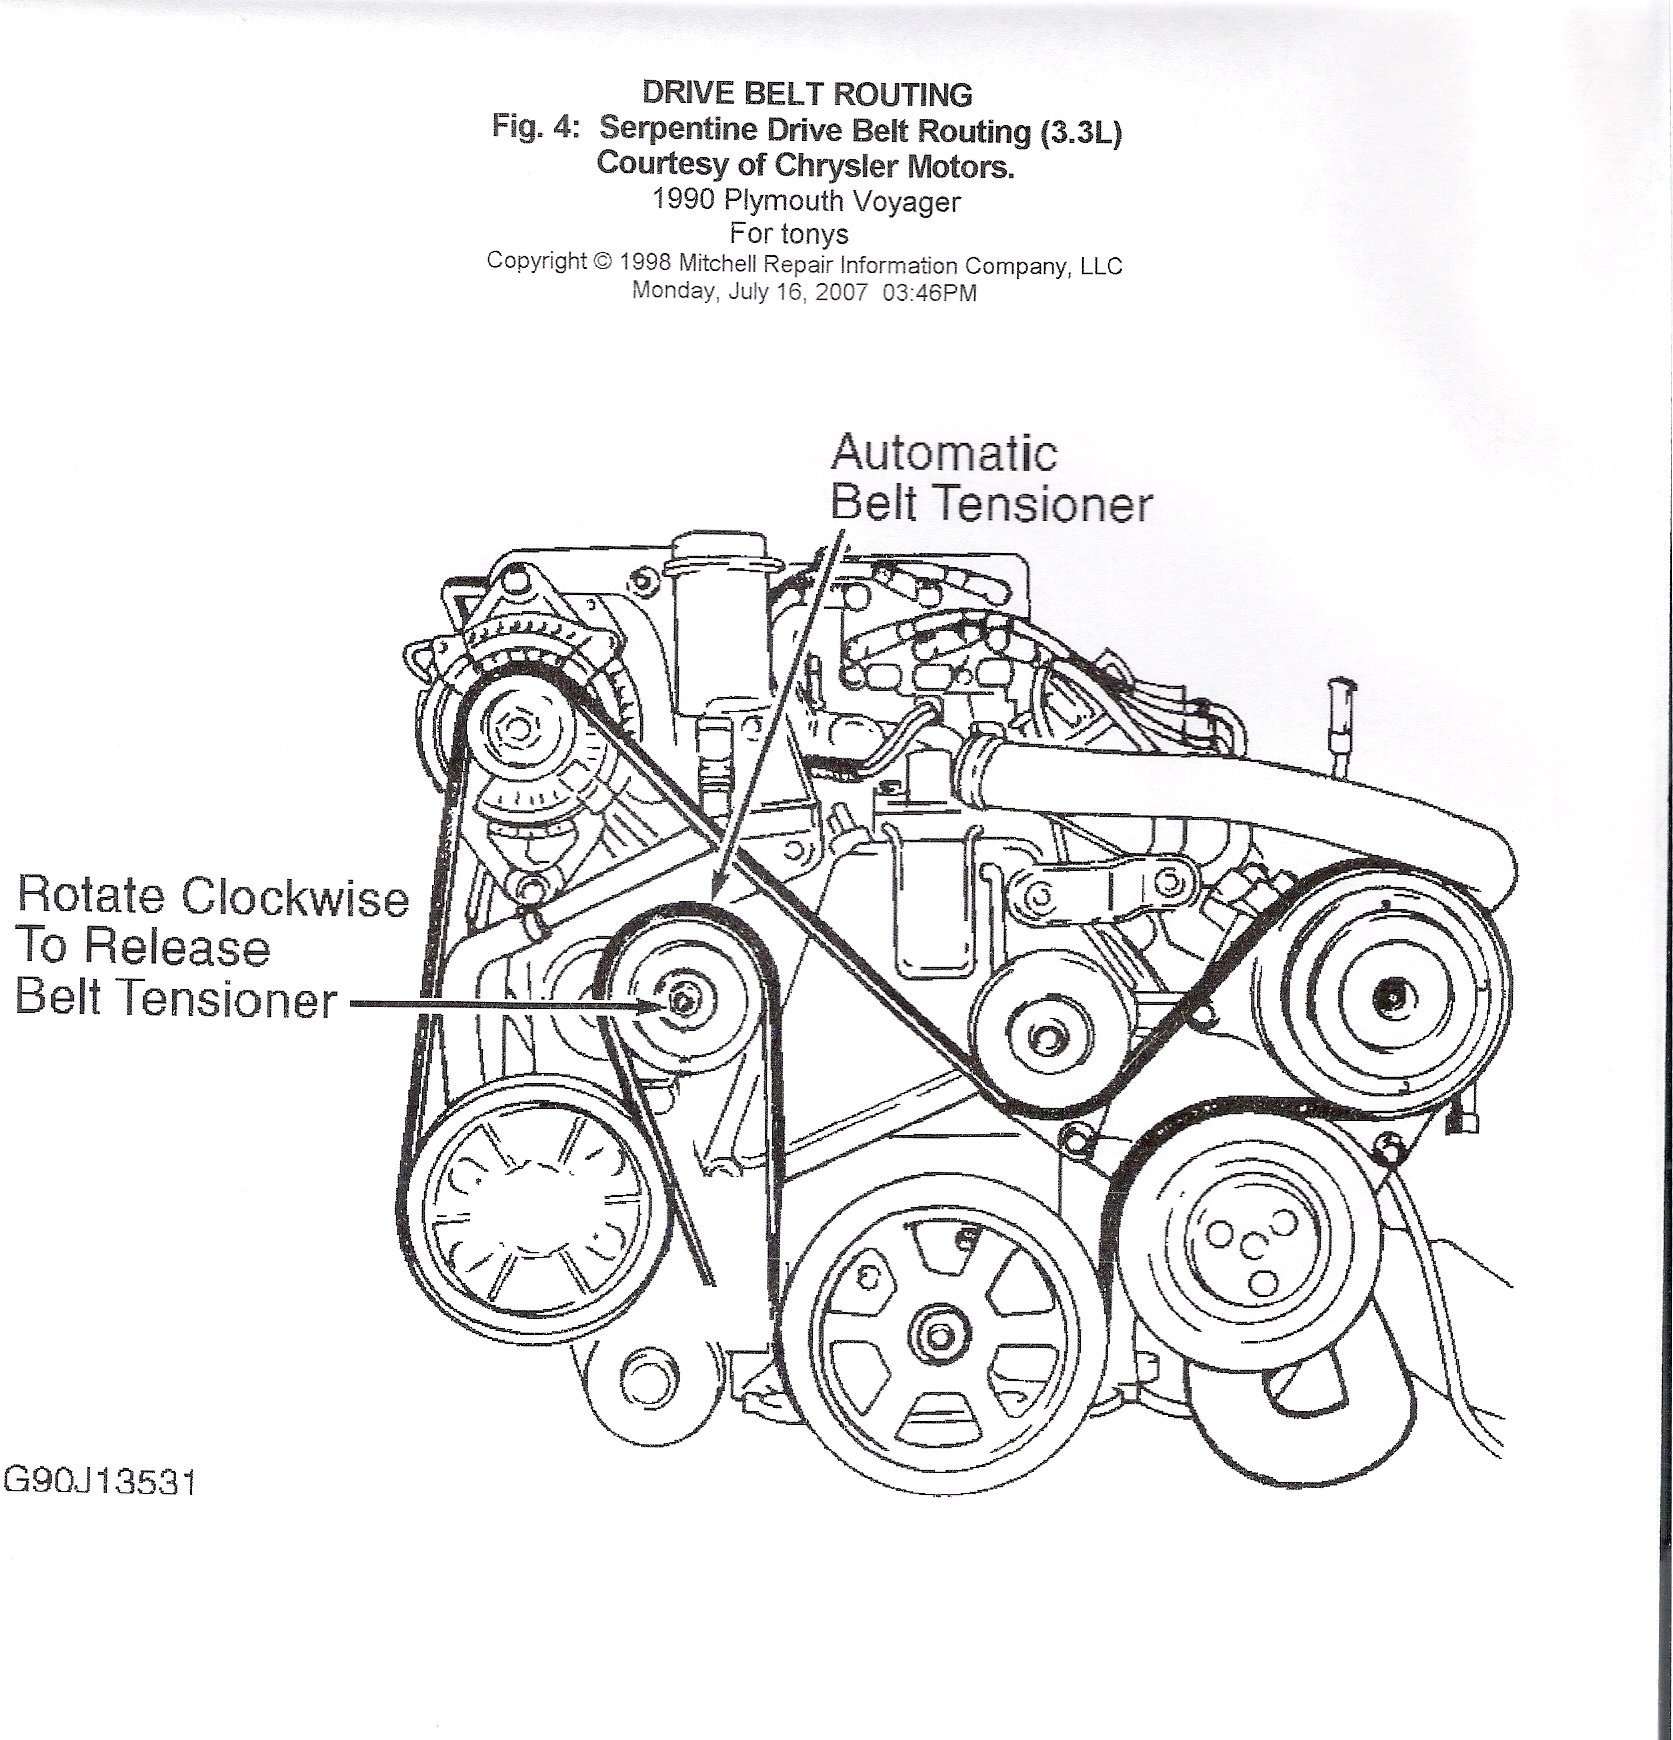 Change Belt Tensioner On 1990 Plymouth Voyager 33 Engine Diagram Graphic